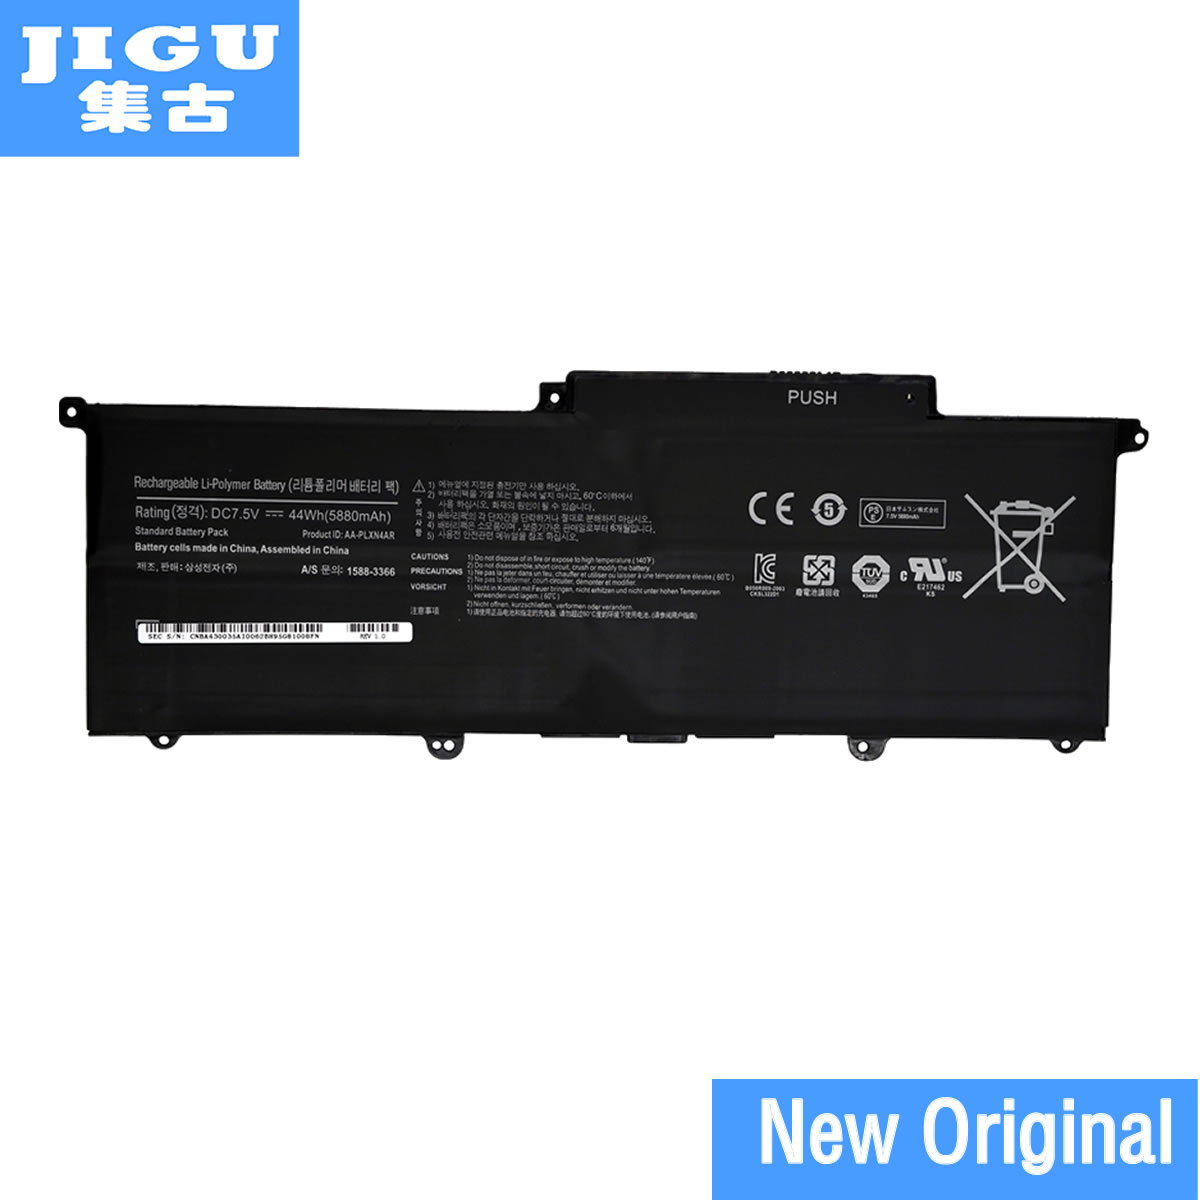 JIGU AA-PLXN4AR Original Laptop Battery For SAMSUNG For Ultrabook 900X3C 900X3D 900X3E NP900X3C NP900X3D NP900X3E 7.5V 44WH